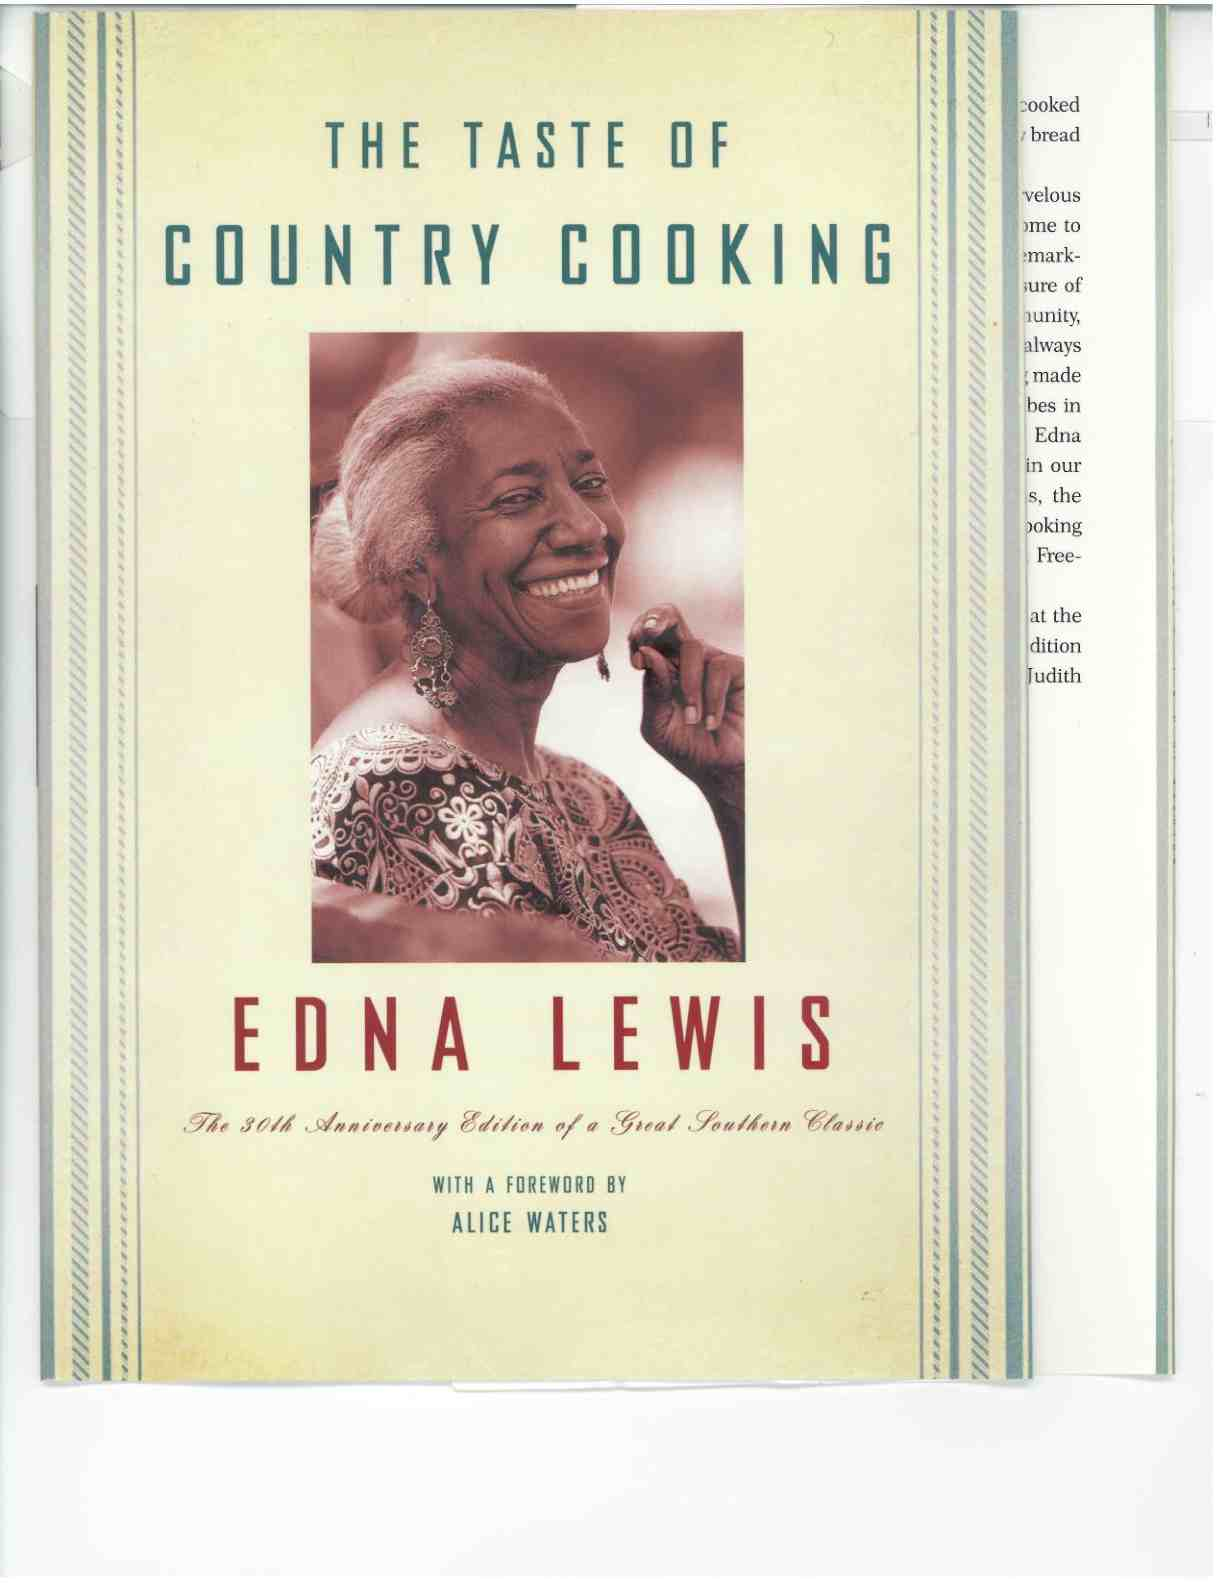 edna-lewis-cover